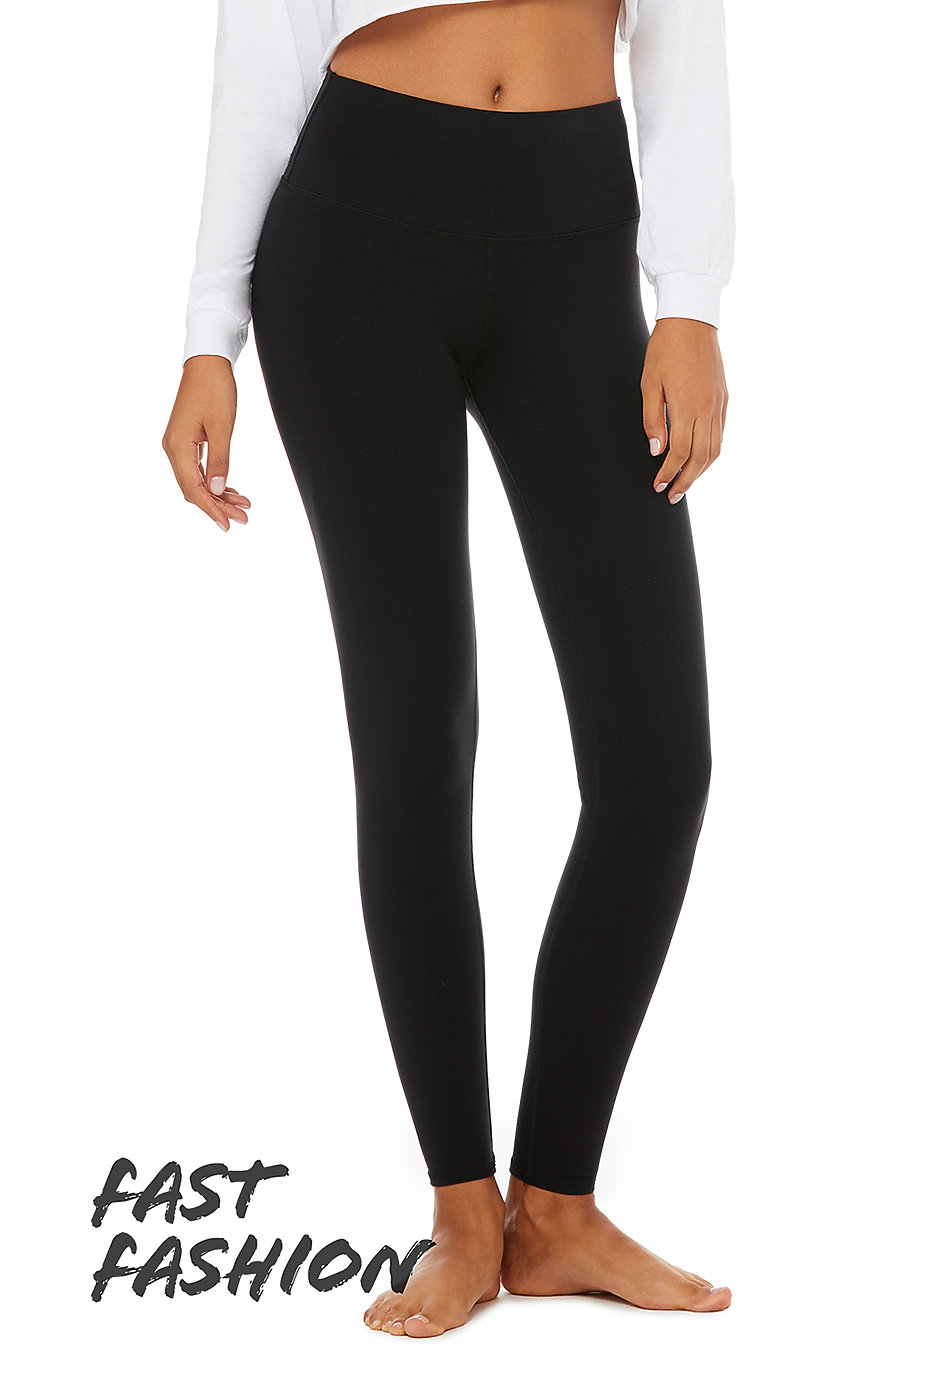 04e21eeb61da81 Wholesale Leggings |High Waisted Leggings | Womens Activewear ...